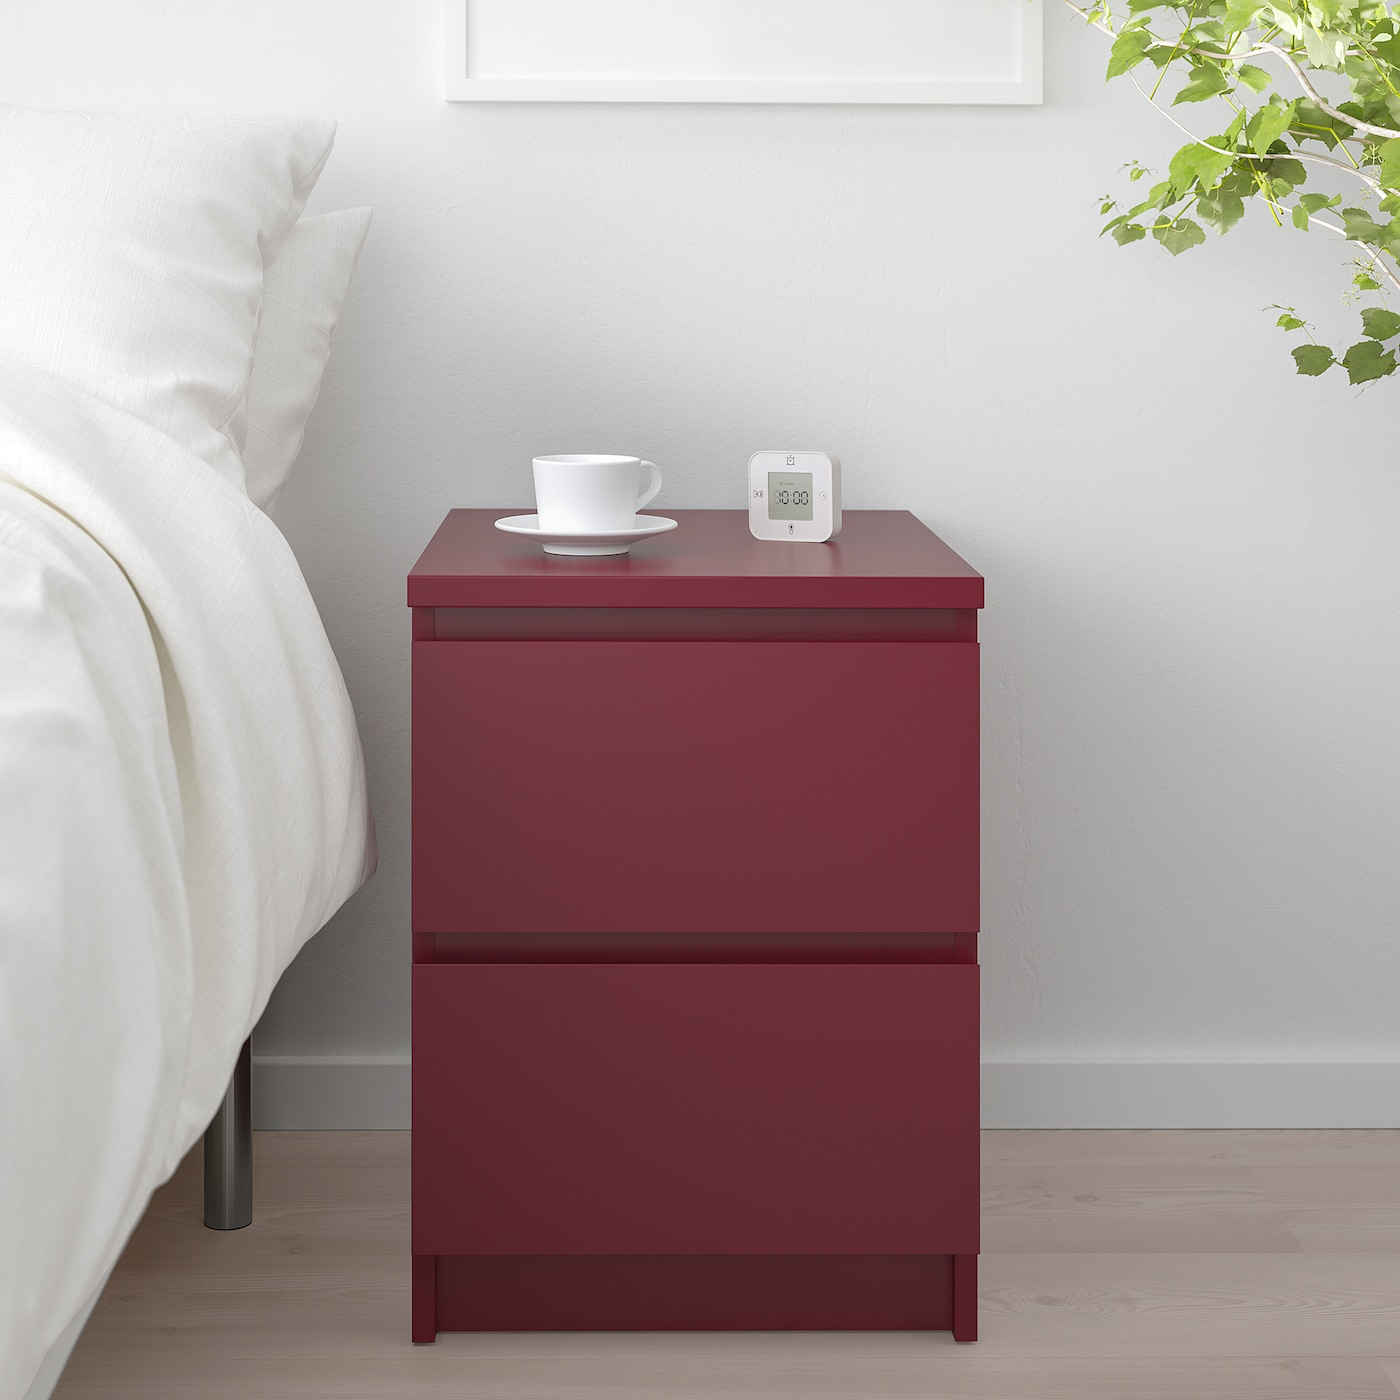 IKEA MALM bedside table 2 drawers | in